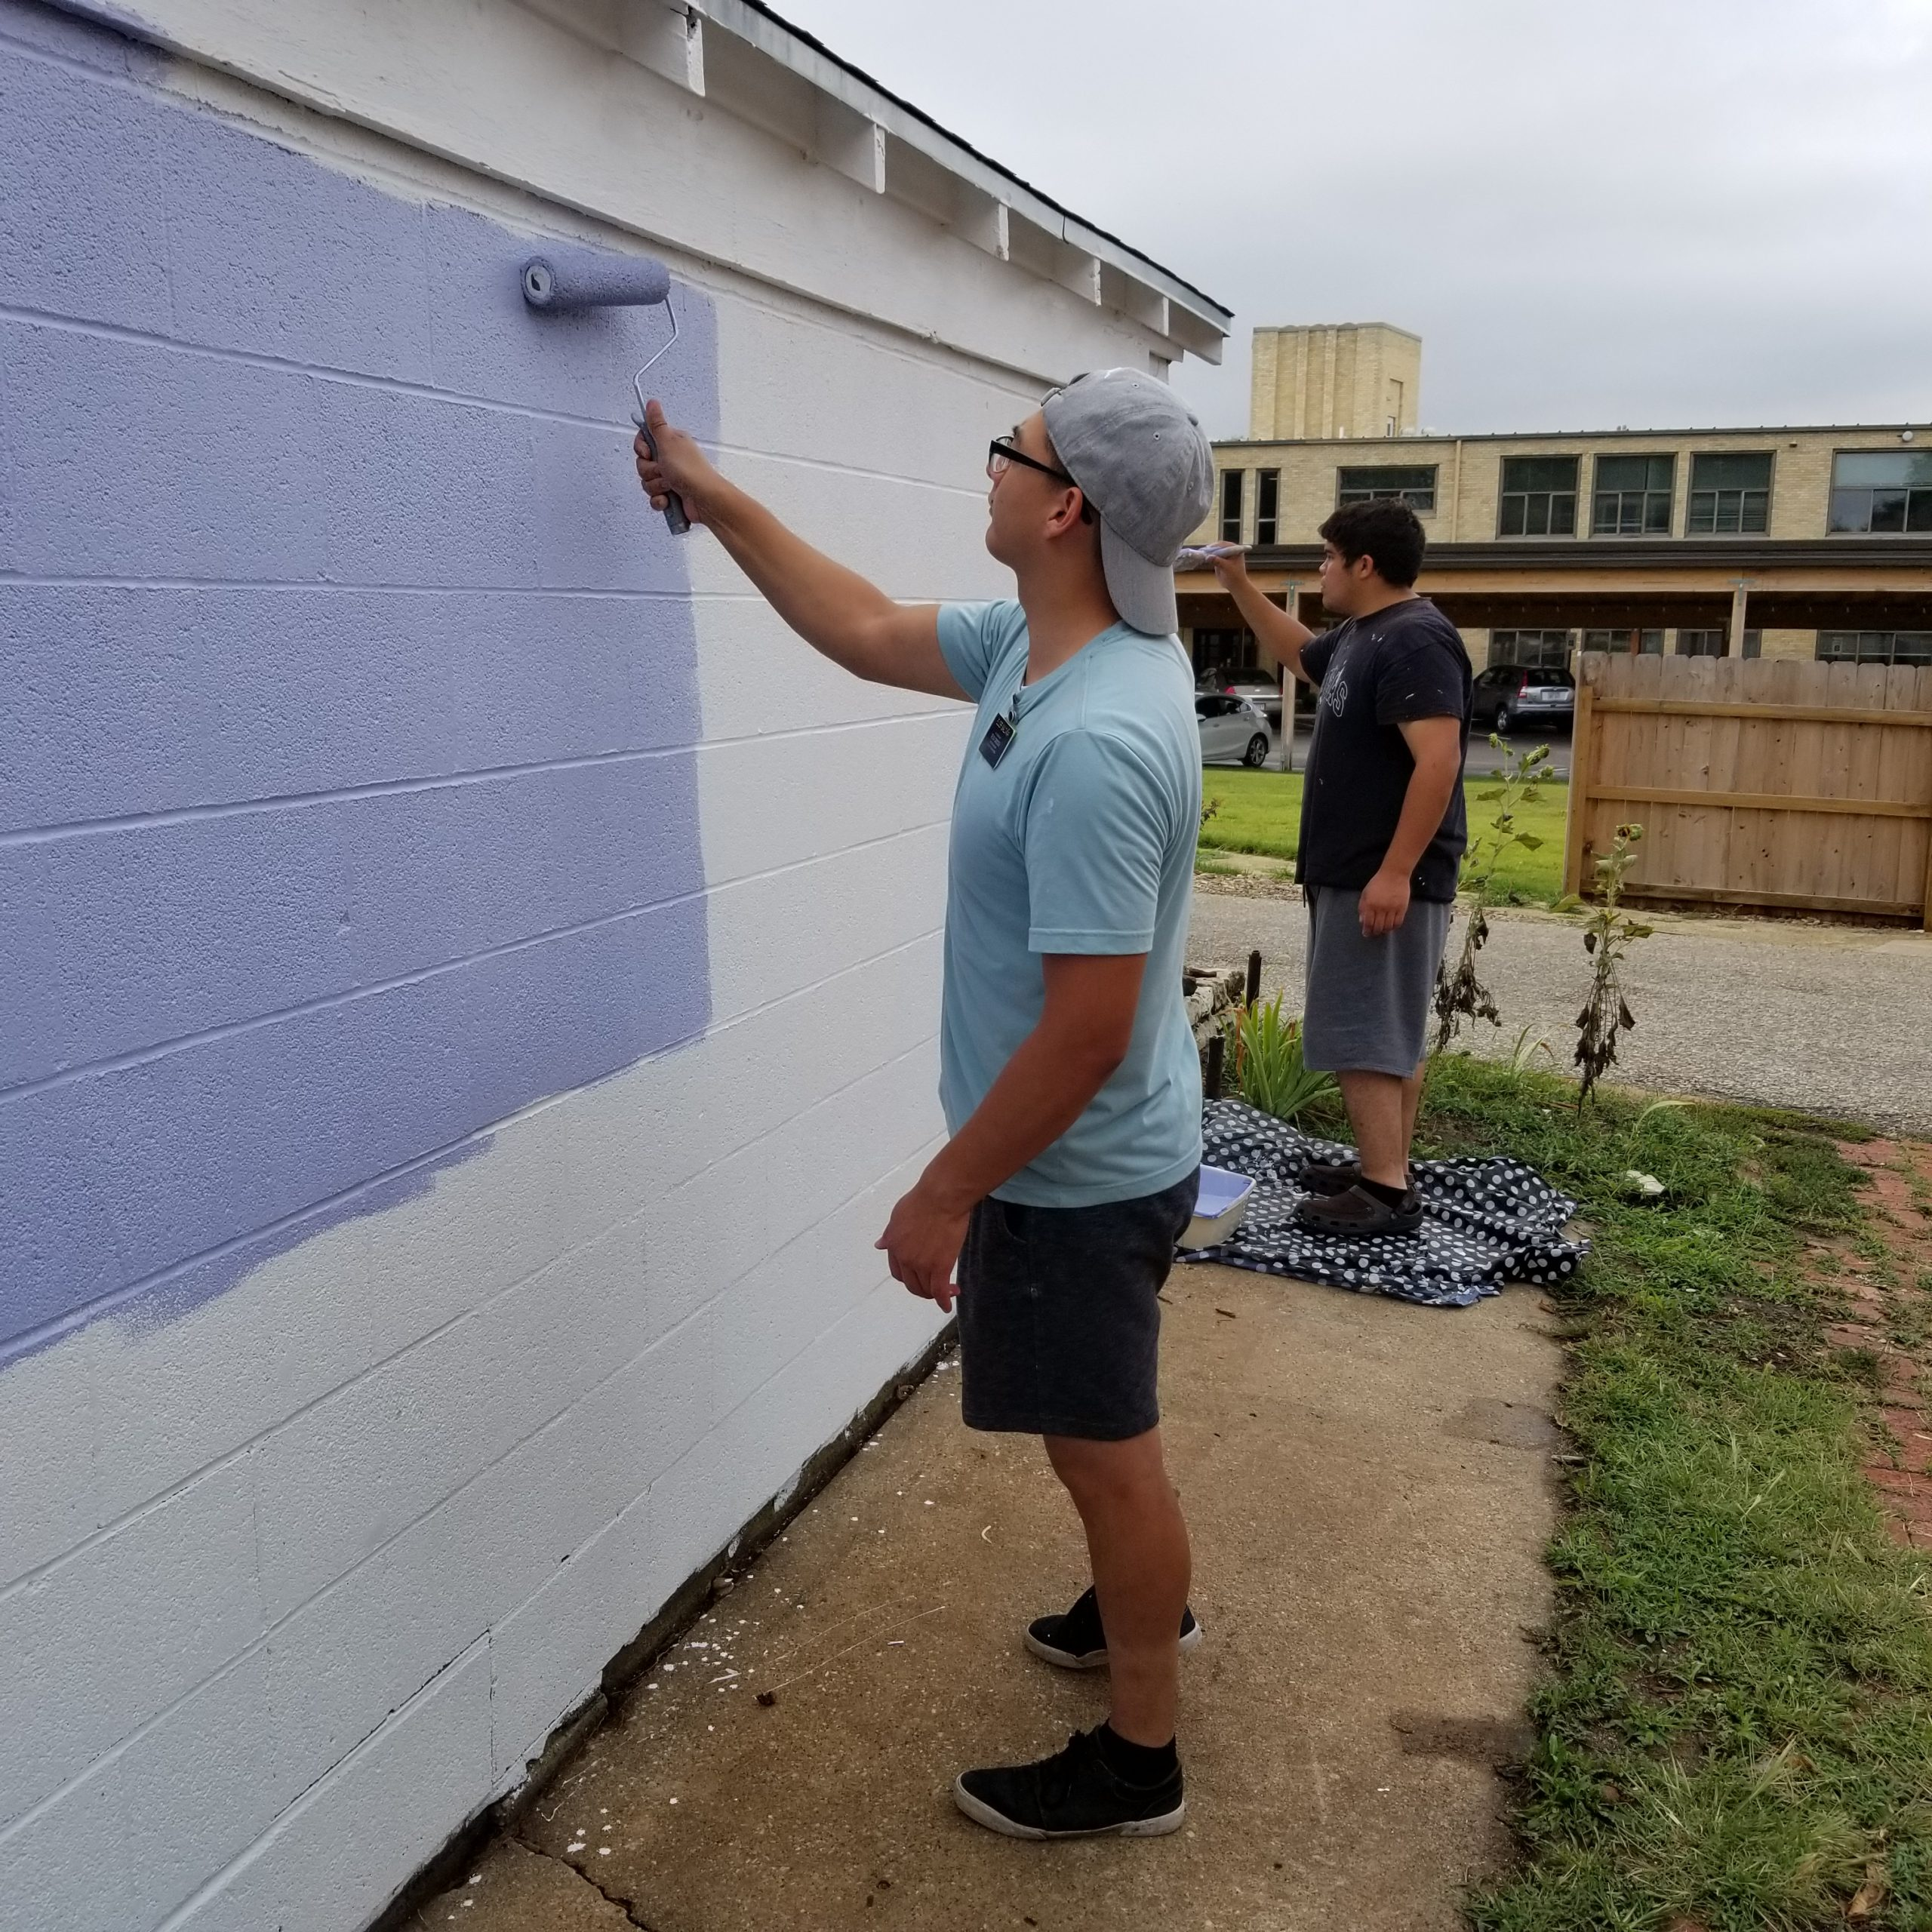 2 young adult males painting the side of a garage that will be the site of a mural.